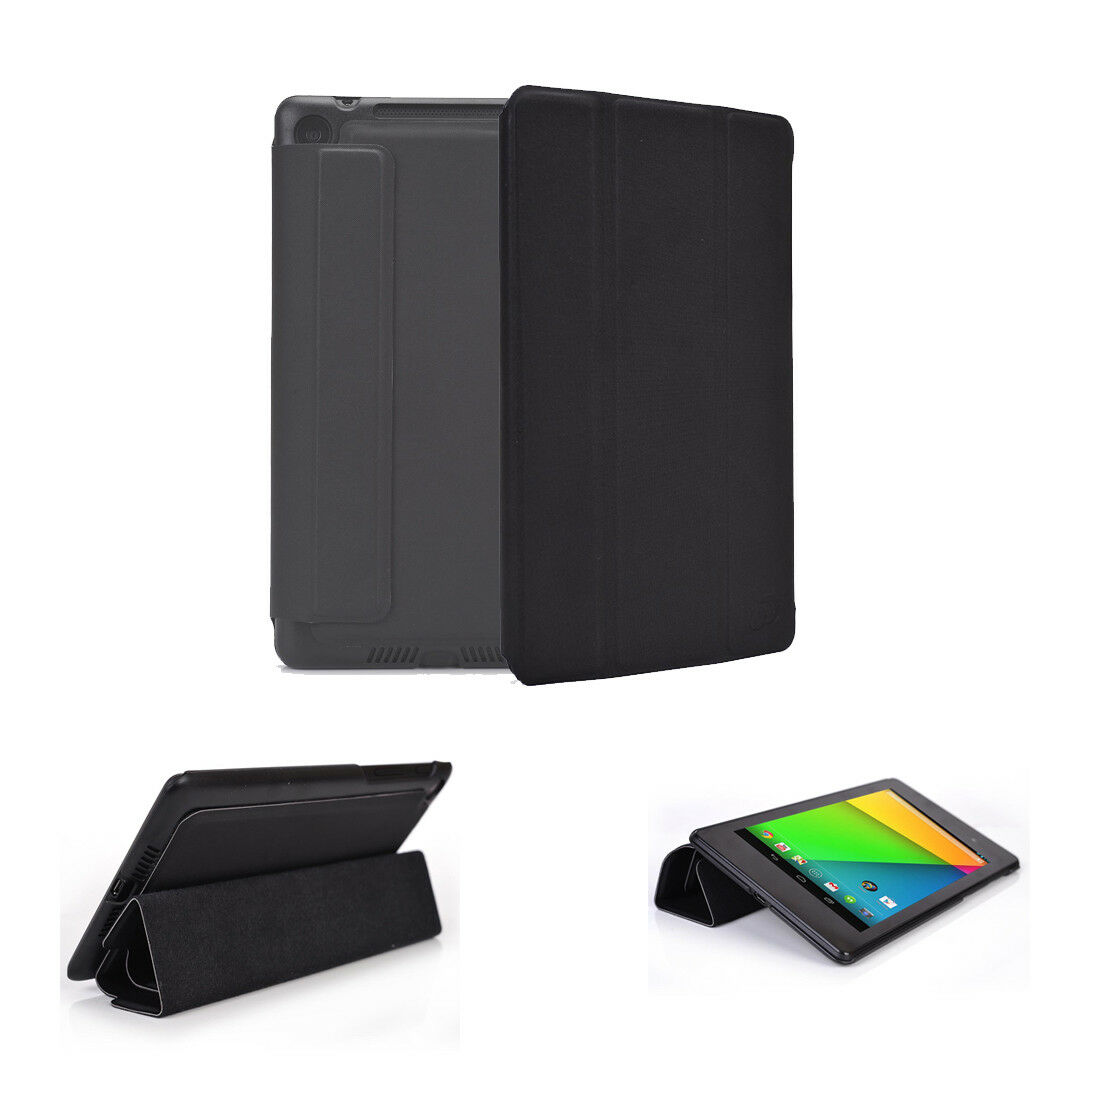 Moko Google Nexus 7 Fhd 2nd Gen Case Genuine Leather Slim Fit For Sale Online Ebay